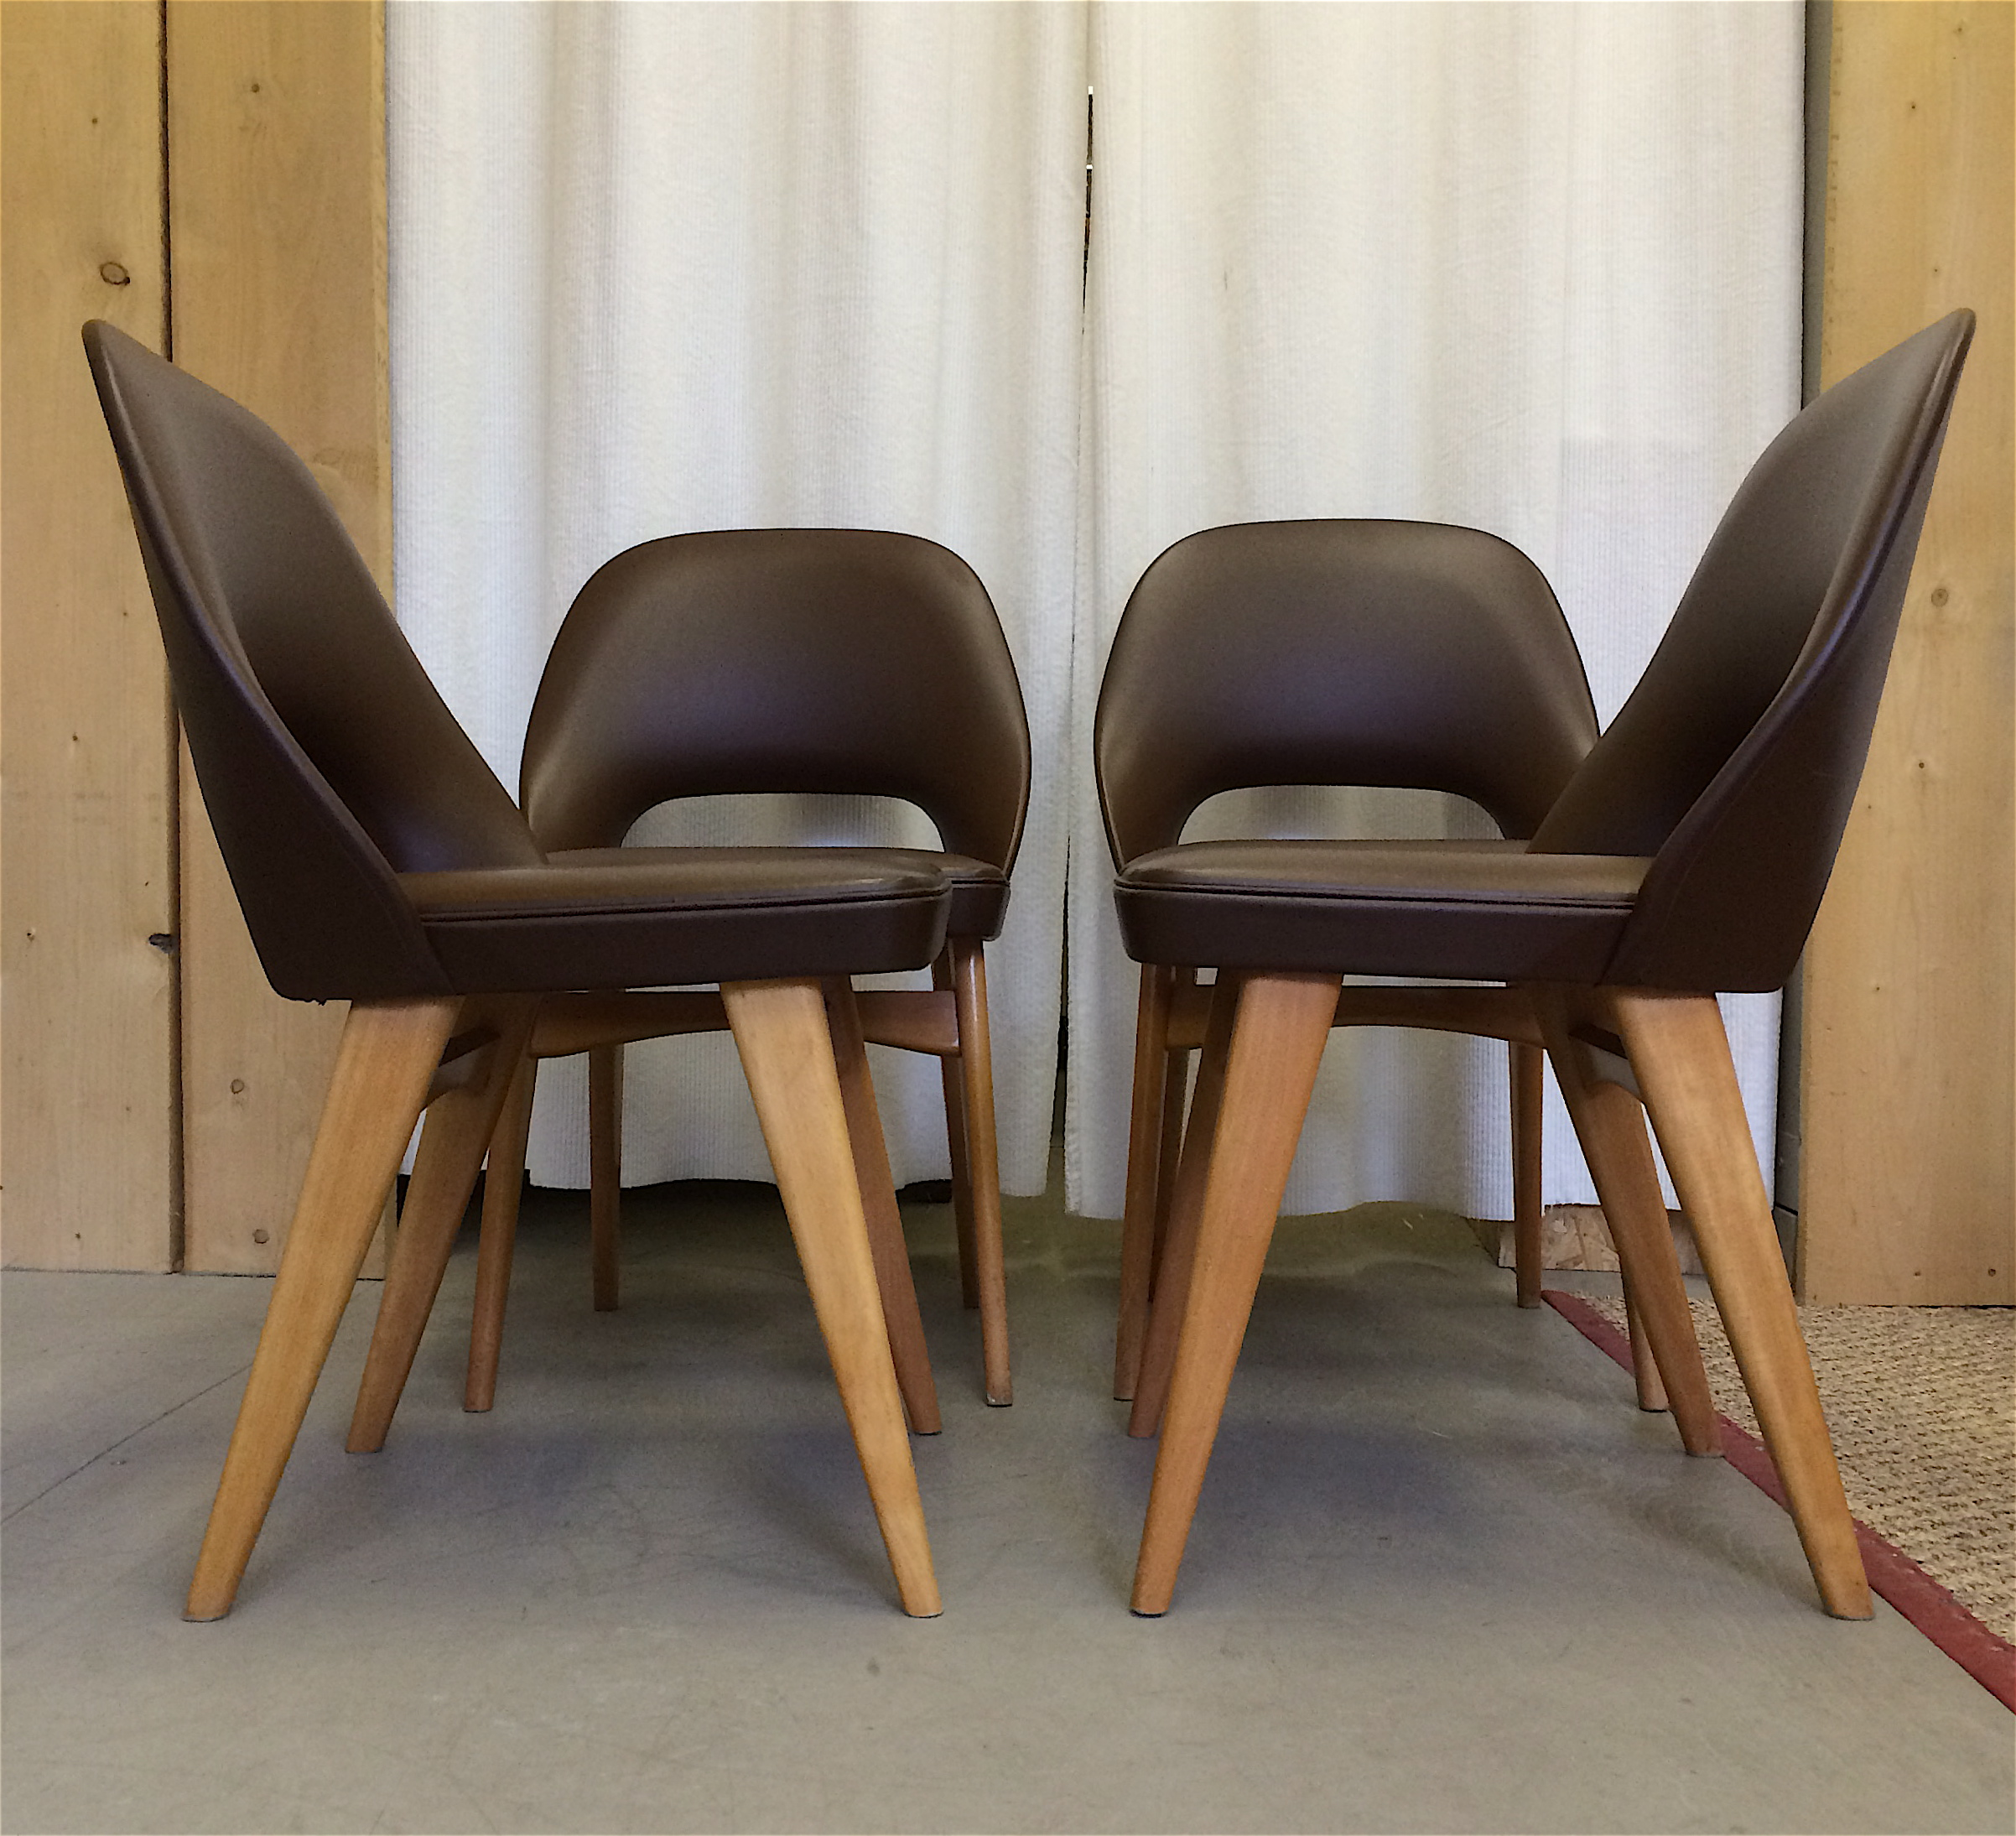 Set Of 4 Dining Room Chairs: Ben Chairs Of Stowe, Set Of 4 Dining